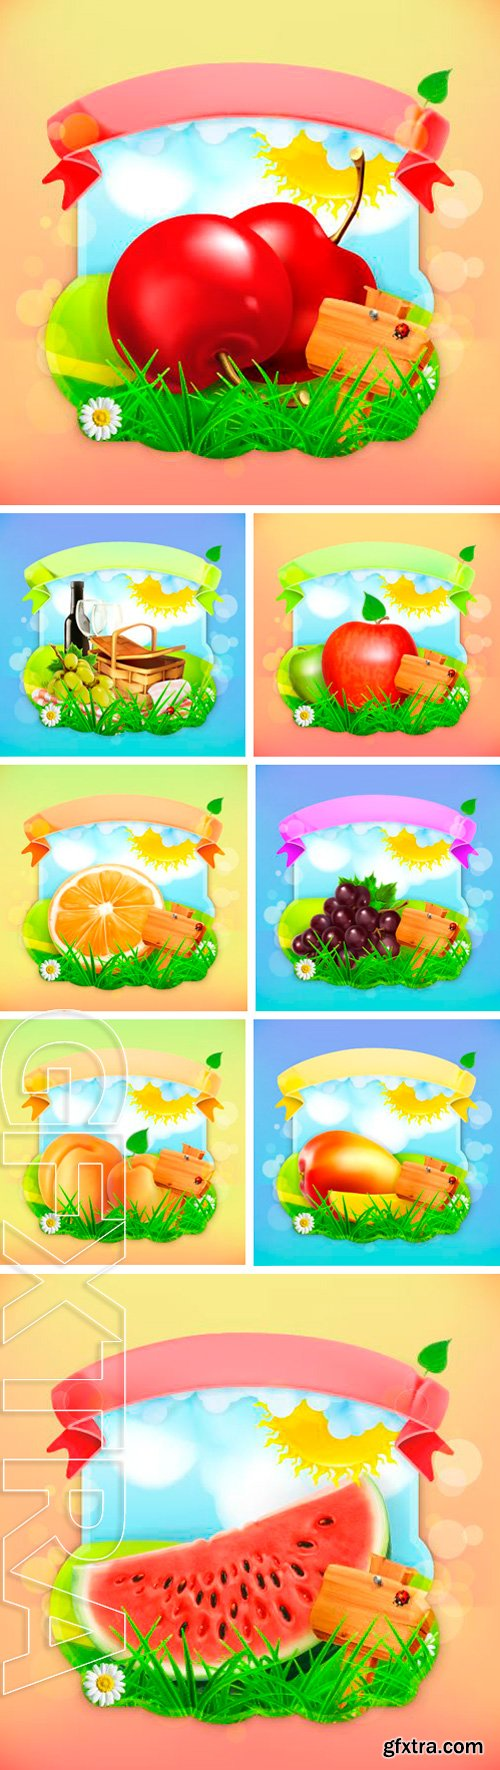 Stock Vectors - Fresh fruit label, vector illustration background for making design of a juice pack, jam jar etc